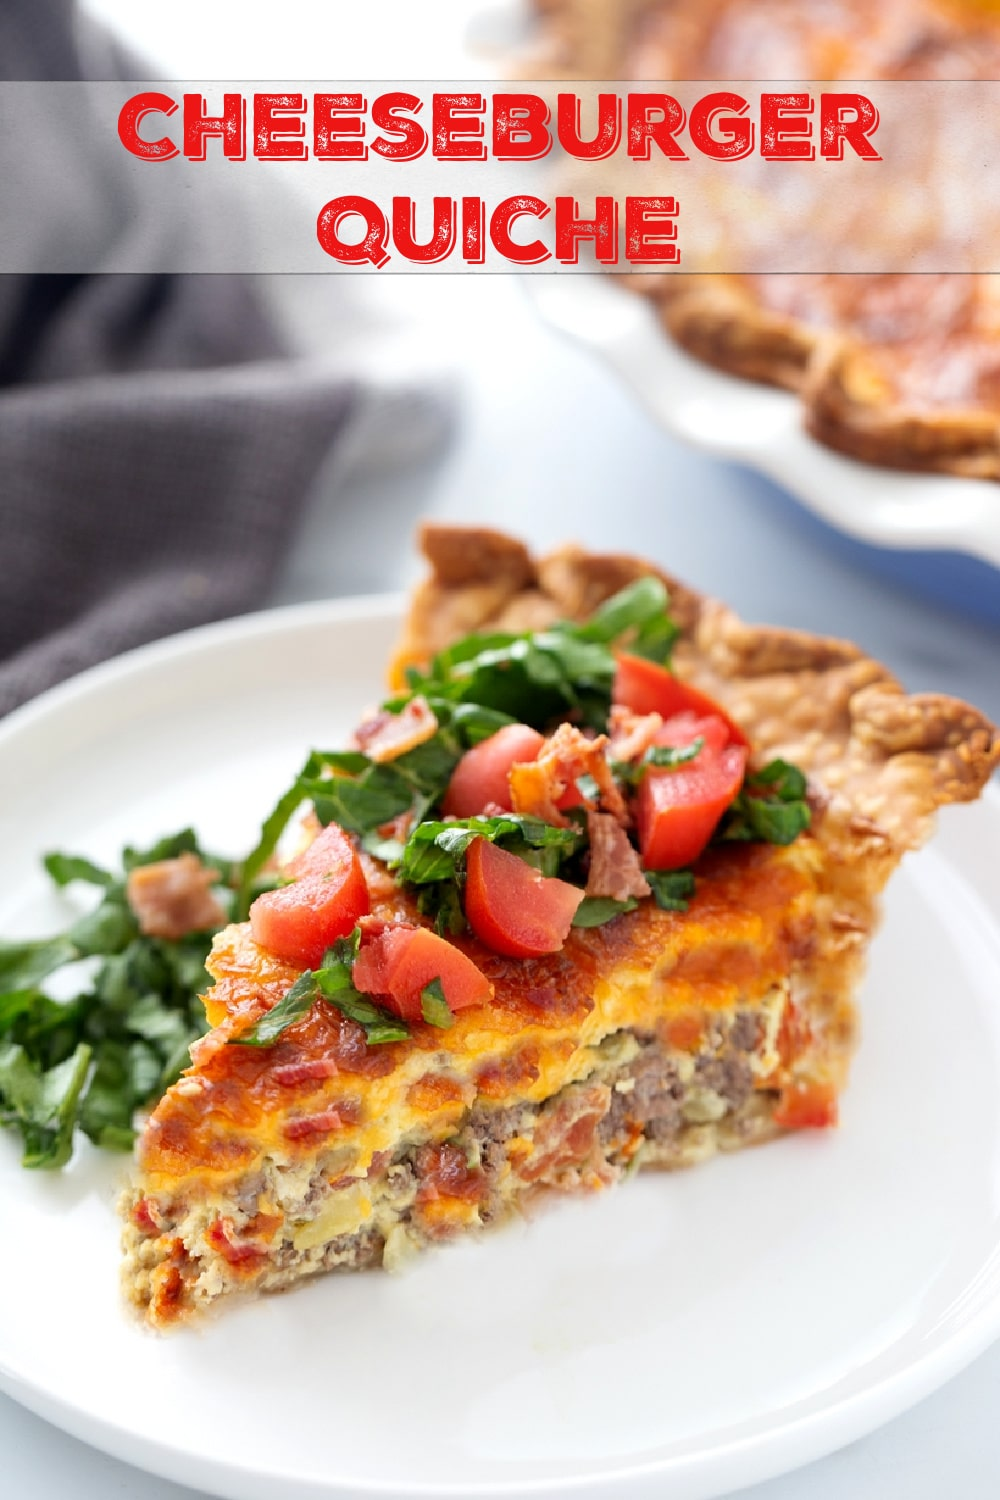 A Cheeseburger Quiche that tastes just like the burger you've been craving. Packed with protein, this quiche is the quick and easy dinner solution you've been searching for. via @cmpollak1